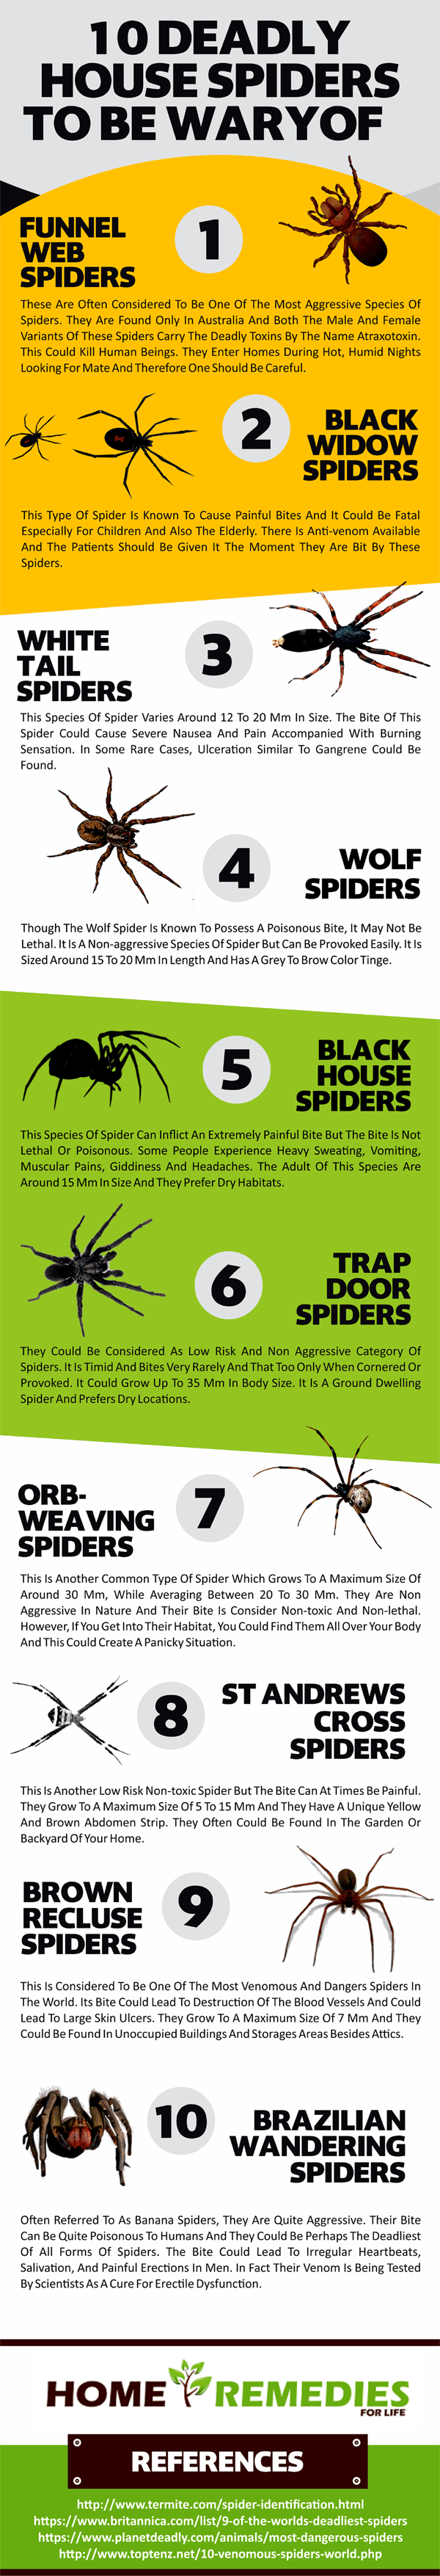 10-deadly-house-spiders-infographic